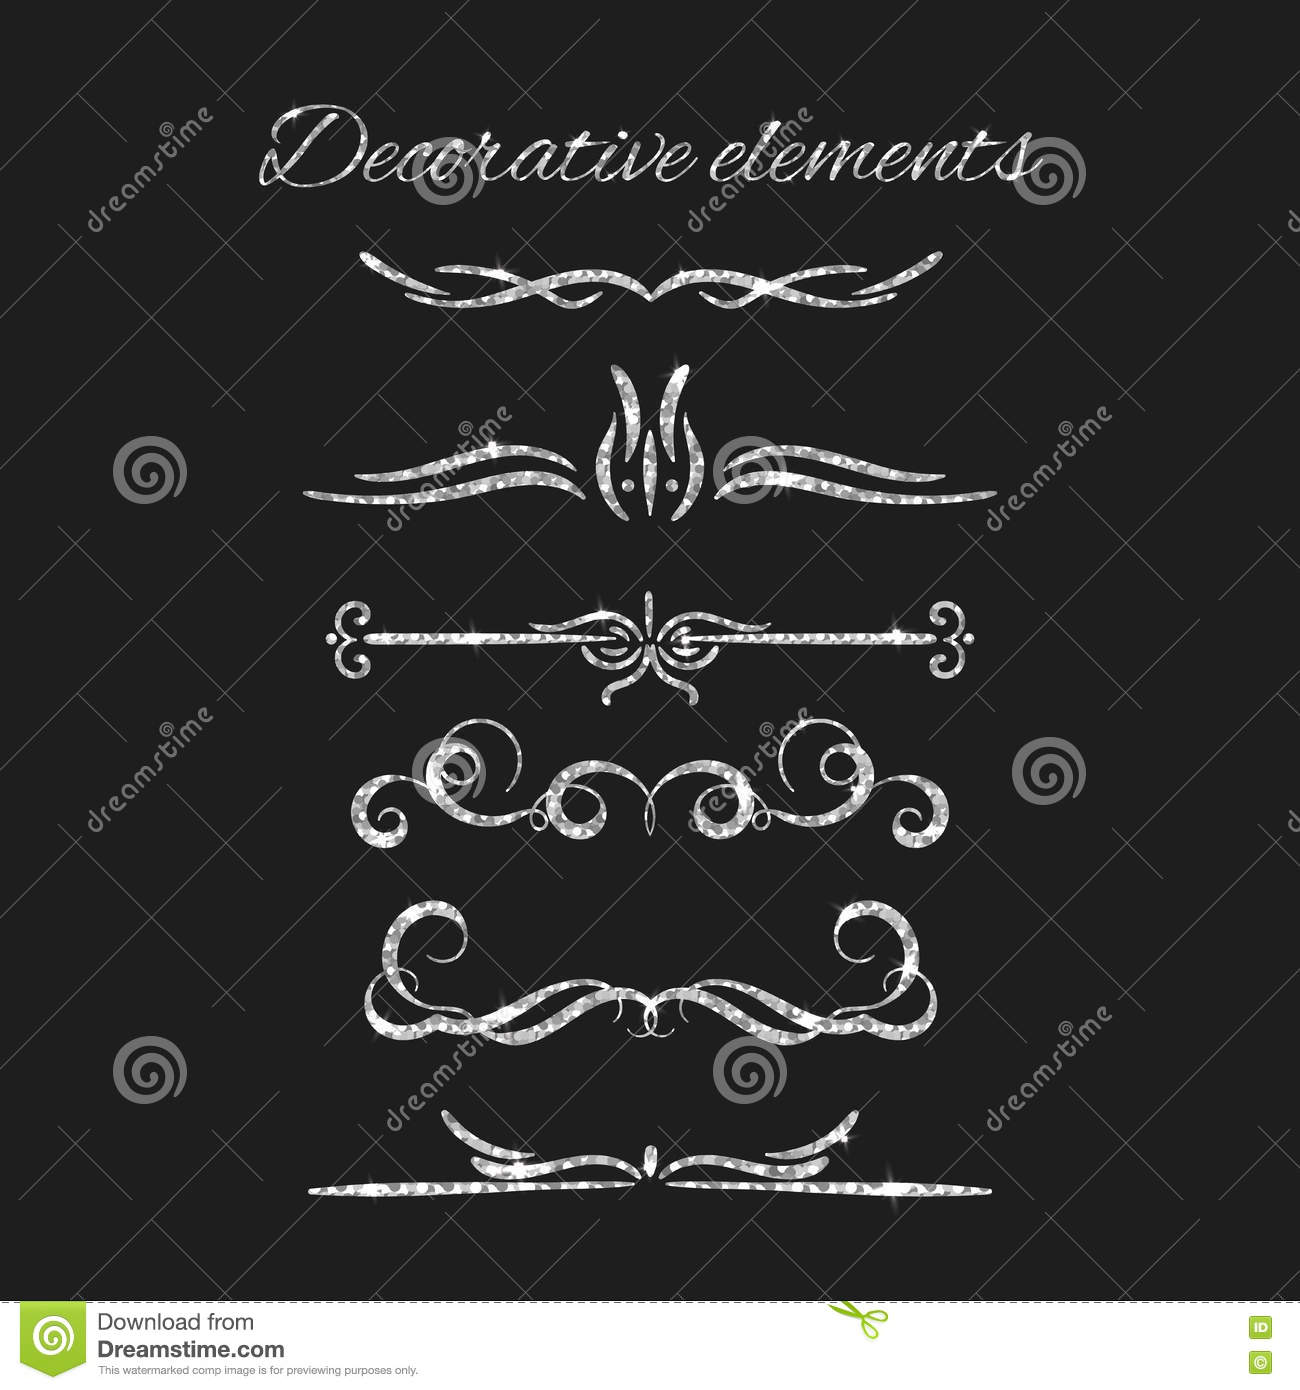 vector set of decorative vintage elements and flourishes cartoon vector. Black Bedroom Furniture Sets. Home Design Ideas